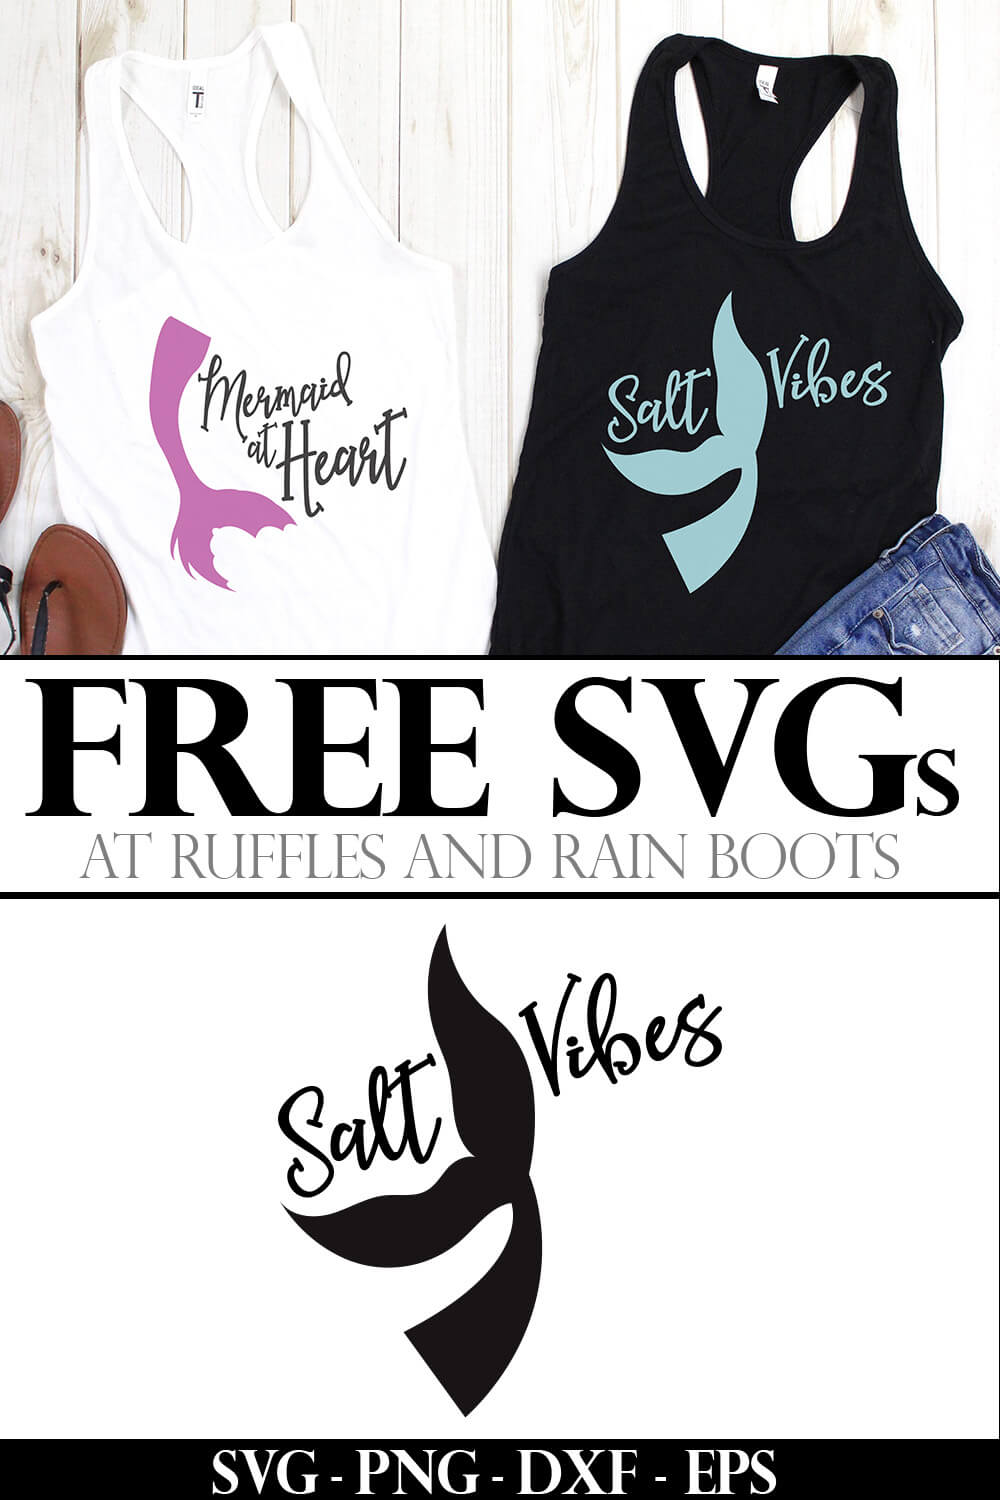 photo collage of salt vibes free mermaid cut file on a tank top with text which reads free svgs